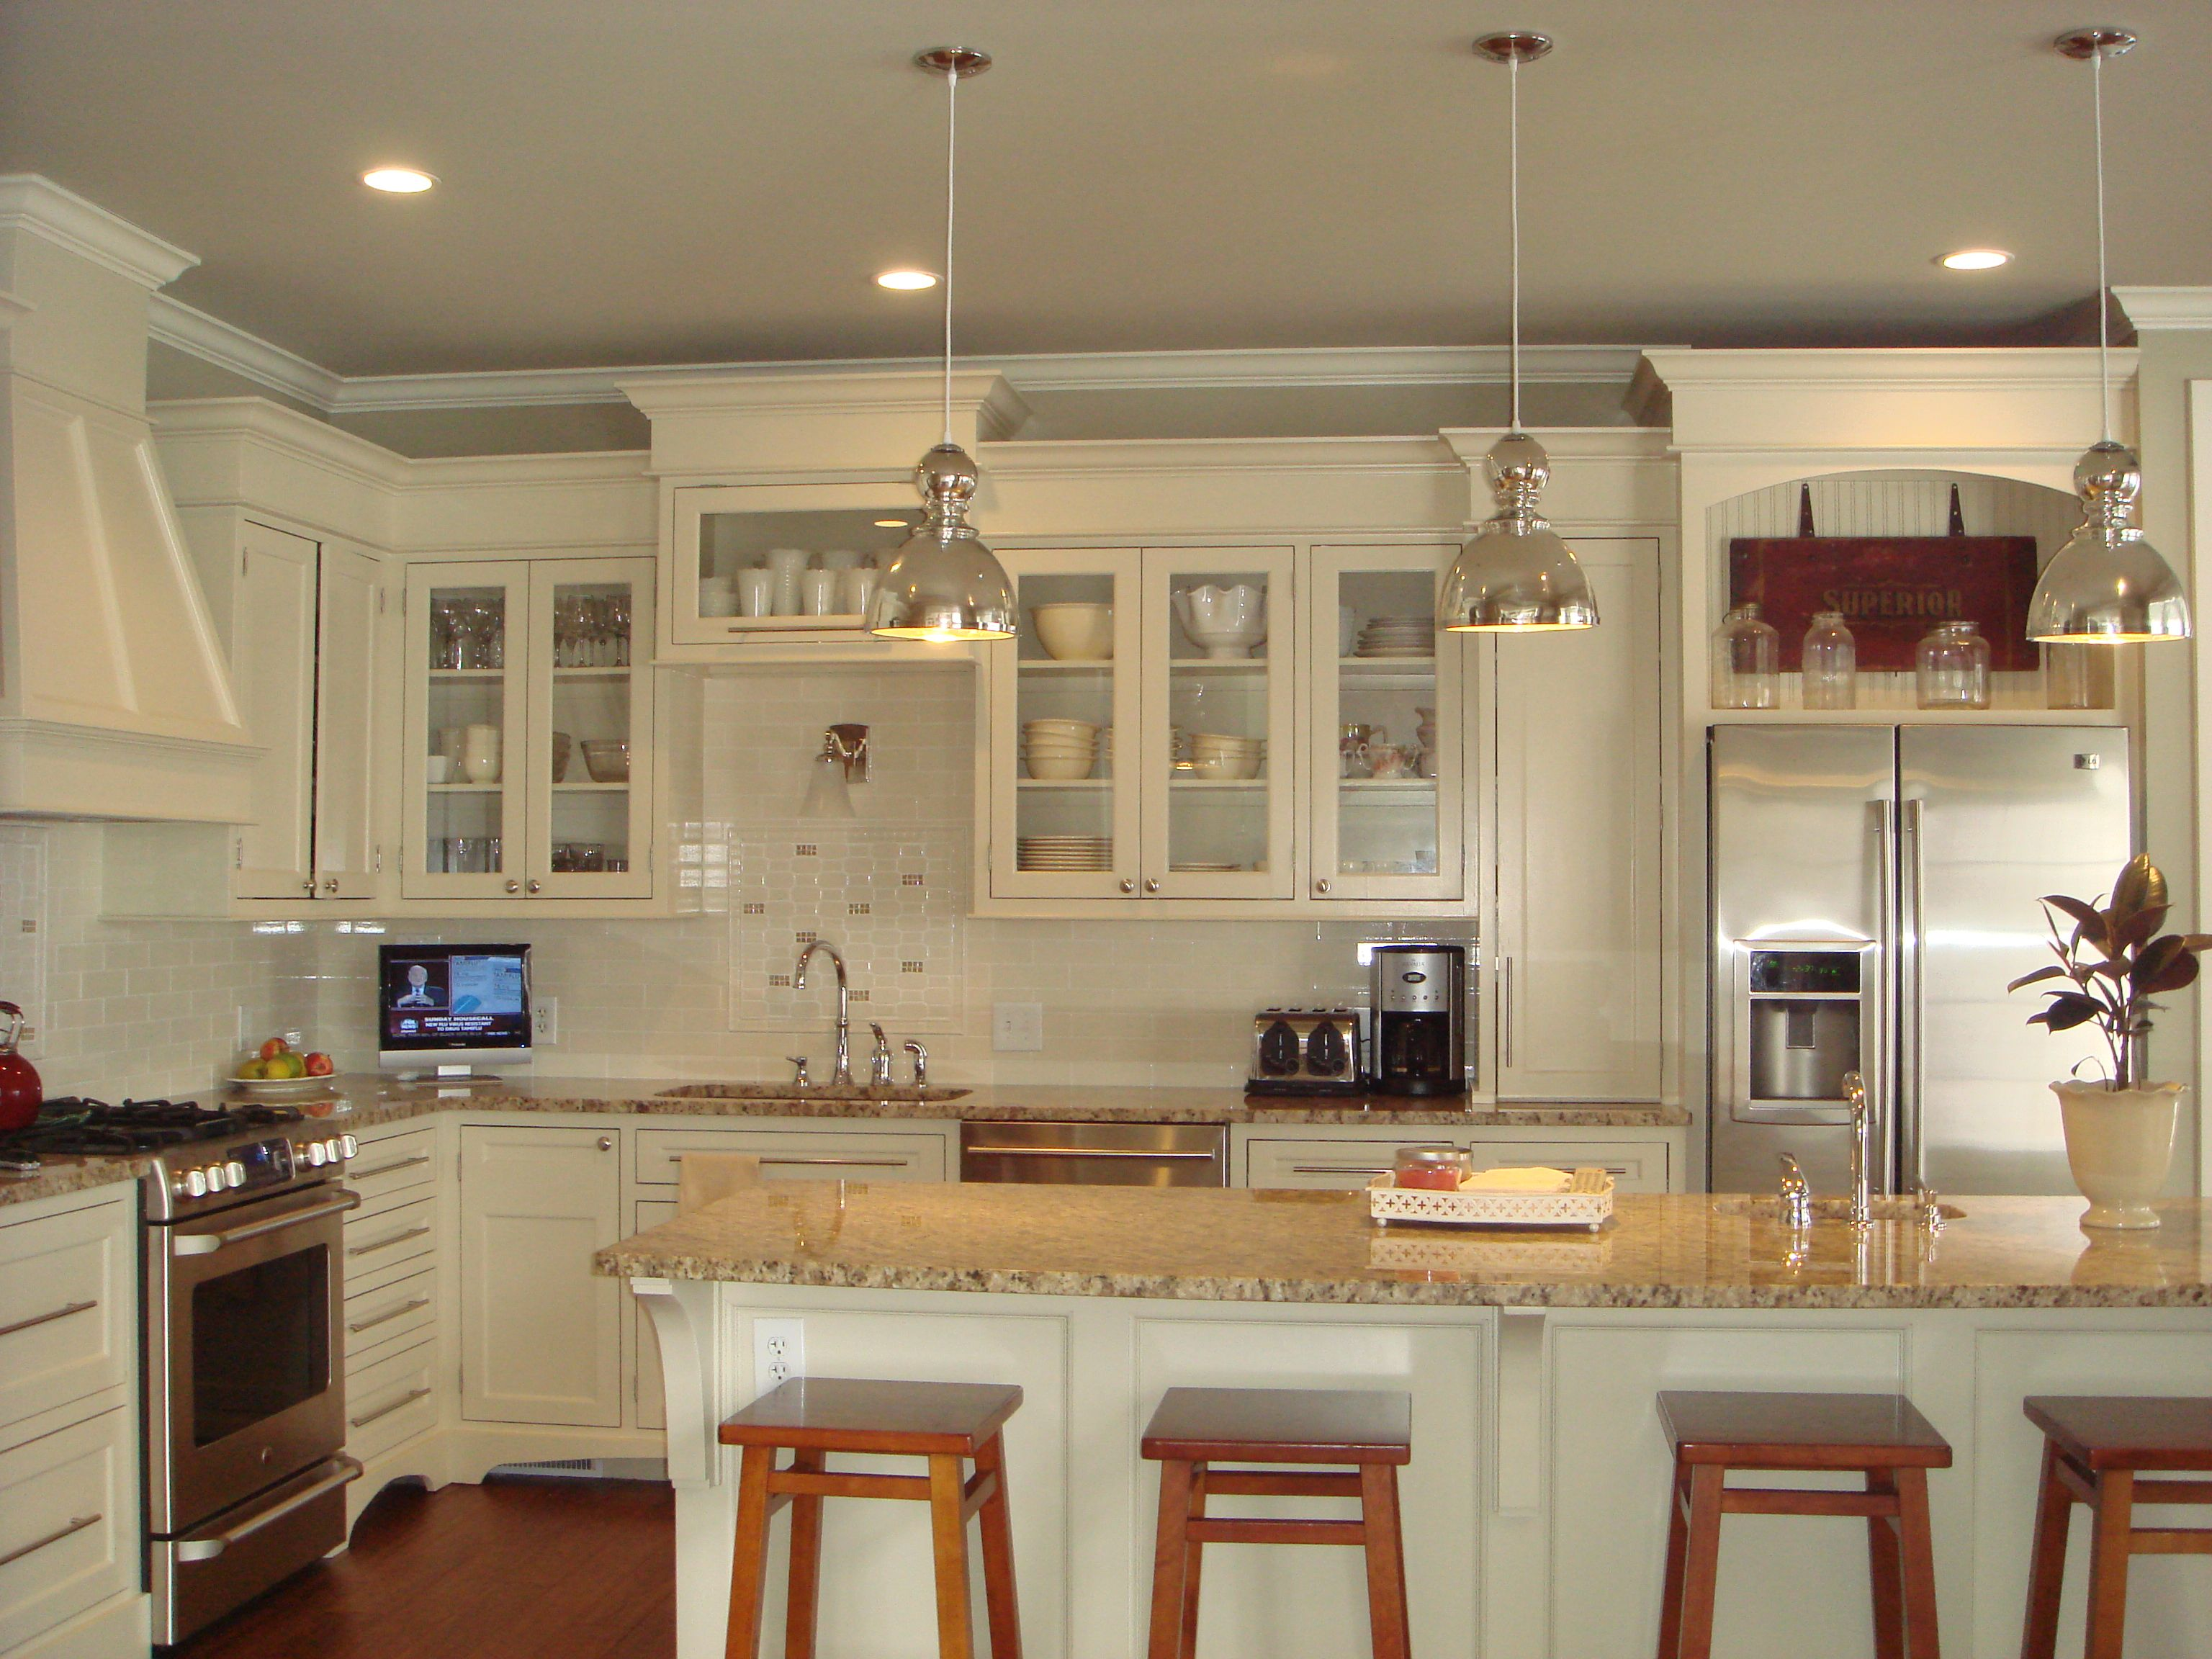 Granite With Cream Cabinets Want To Repaint The Cabinets White Cream Upgrade To Granite Or